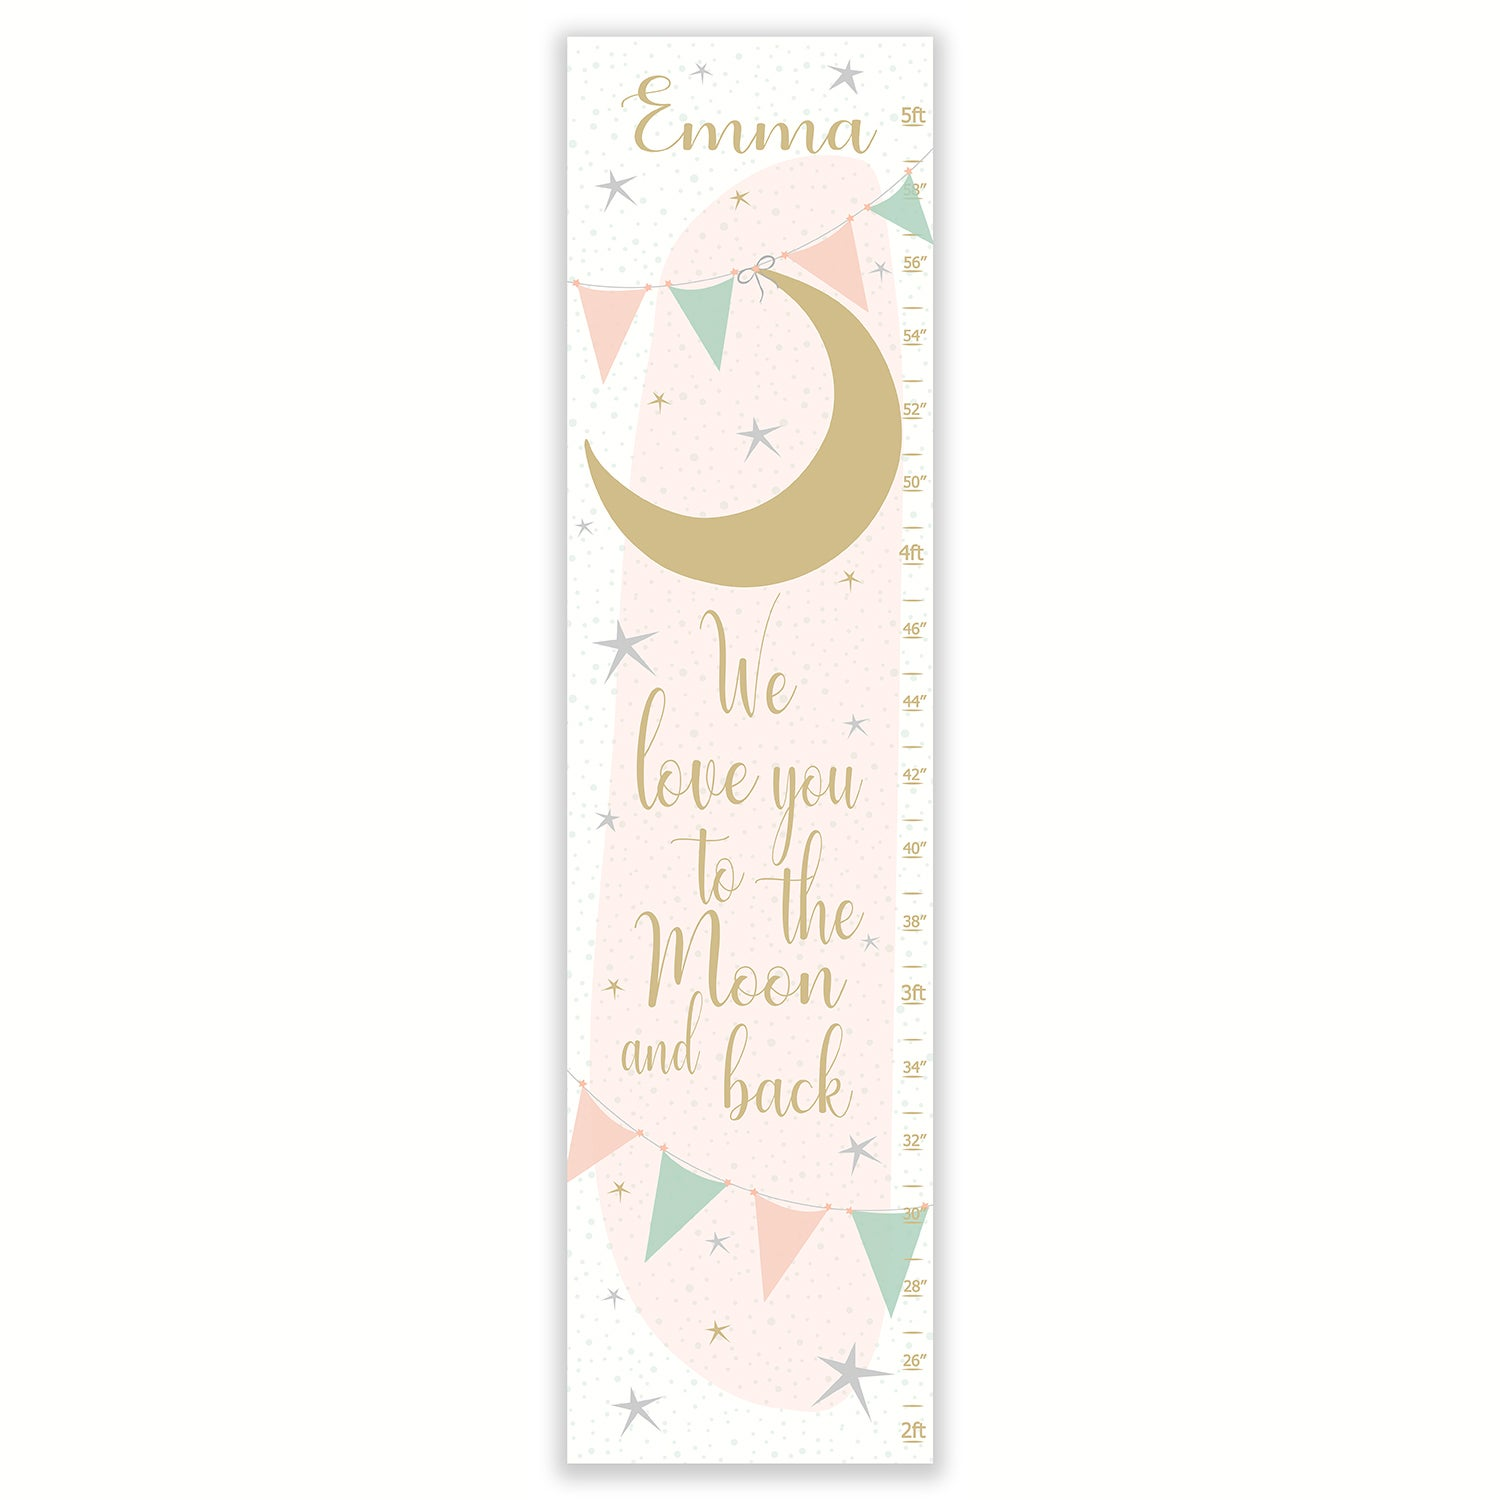 Image of We Love You To The Moon and Back - Personalized Blush Mint and Gold Canvas Groth Chart